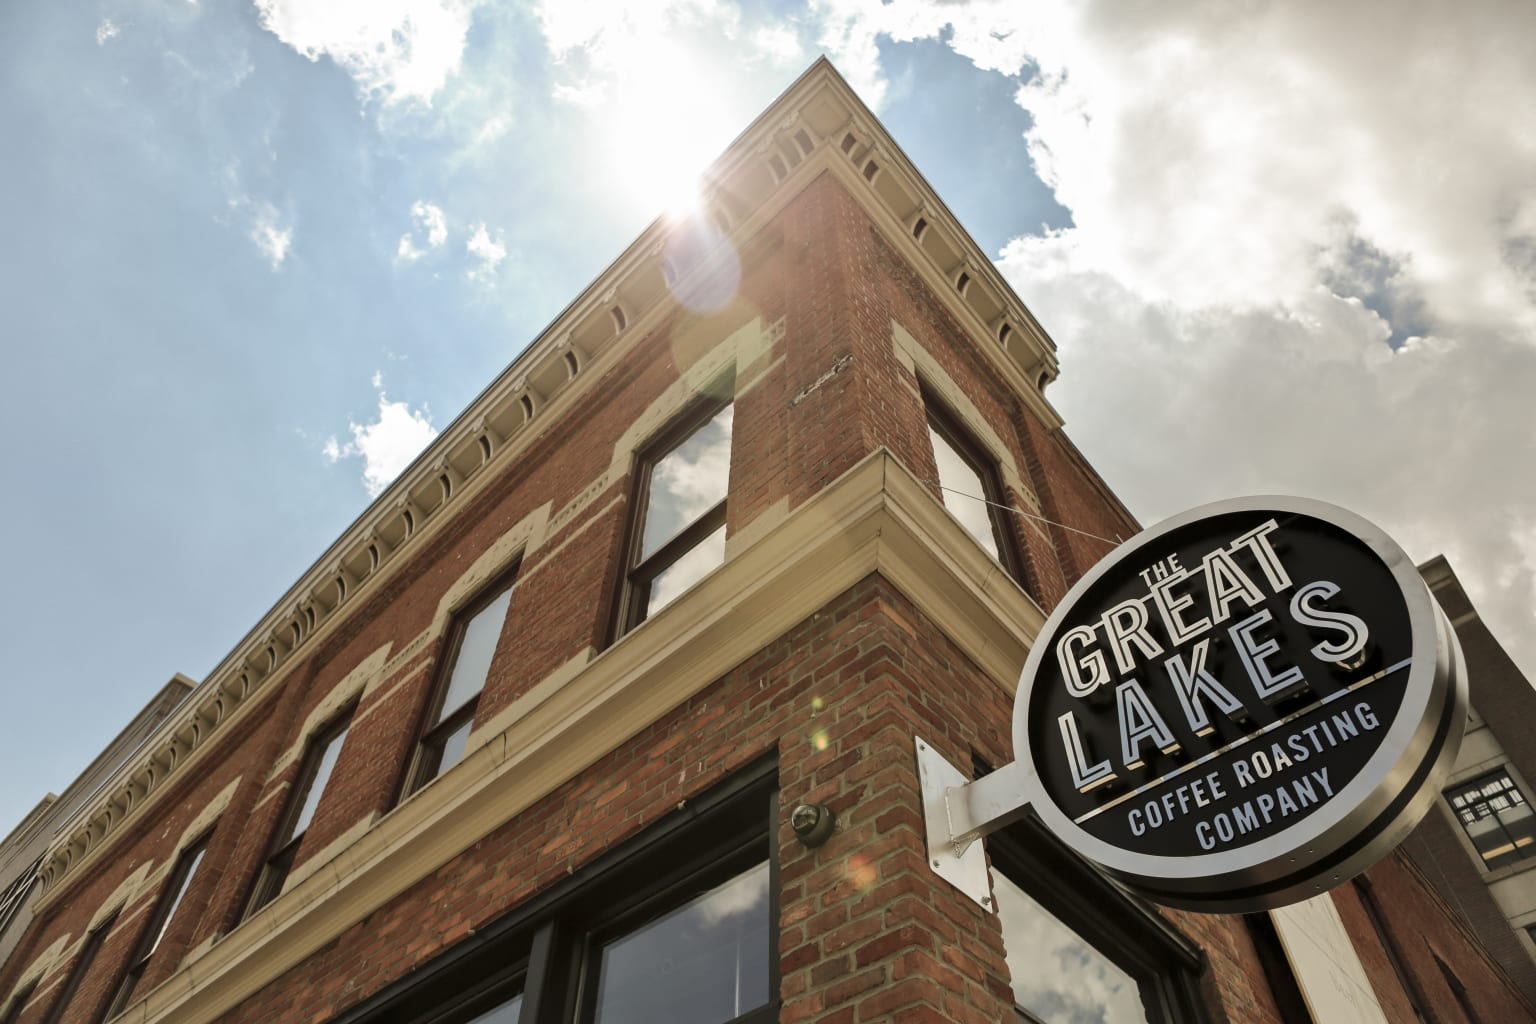 The Great Lakes Coffee Roasting Co. Branding